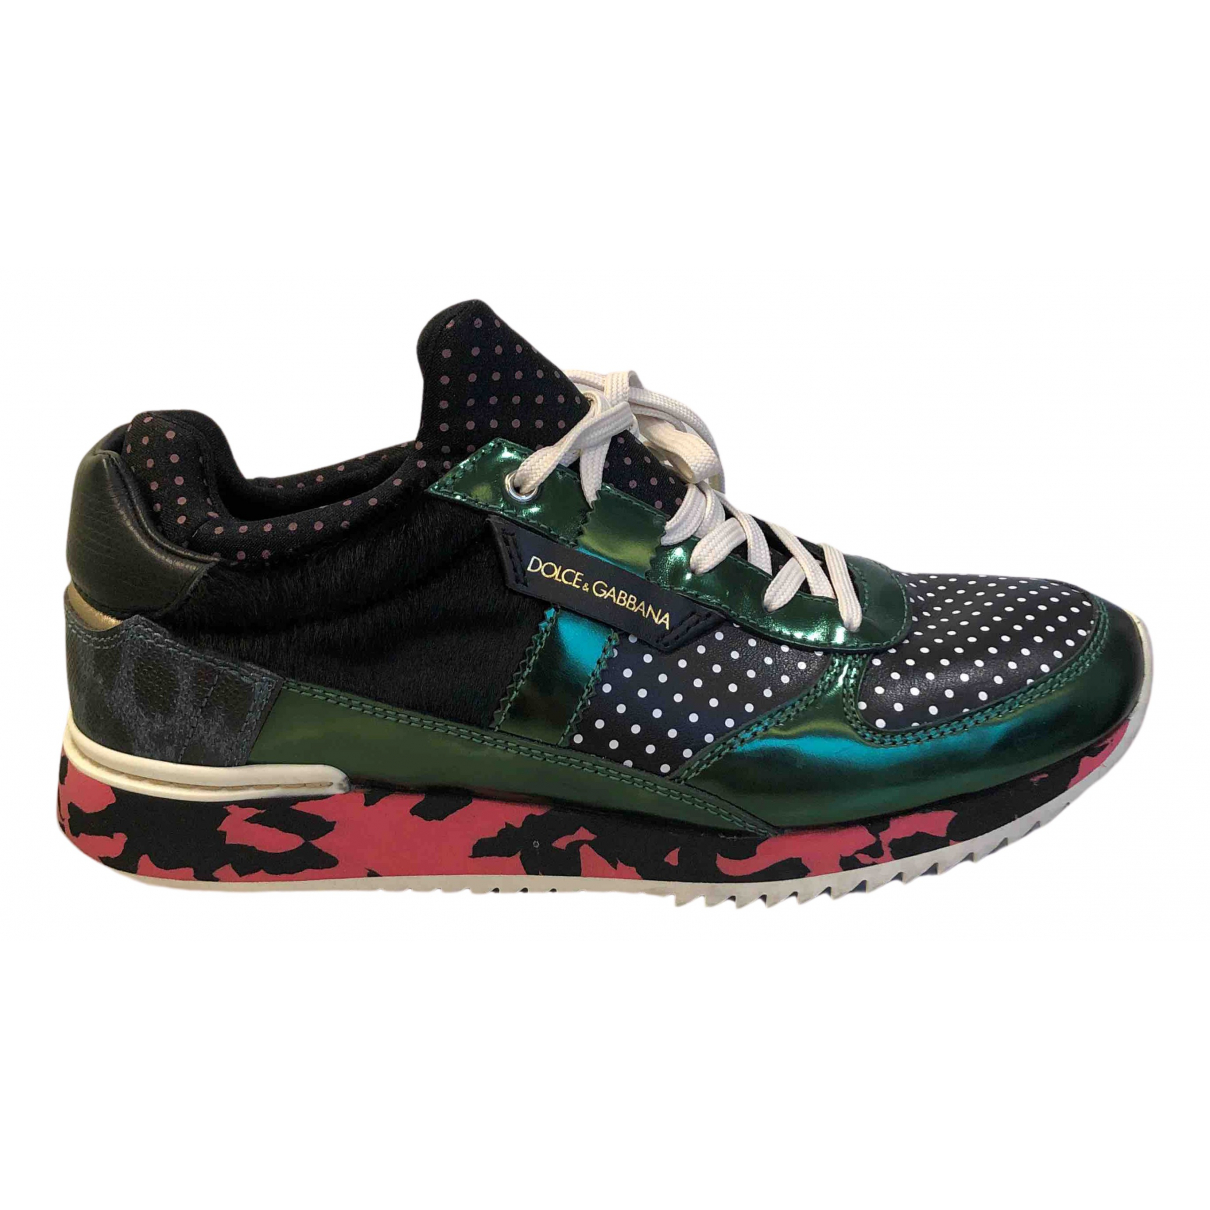 Dolce & Gabbana N Multicolour Leather Trainers for Women 38 EU